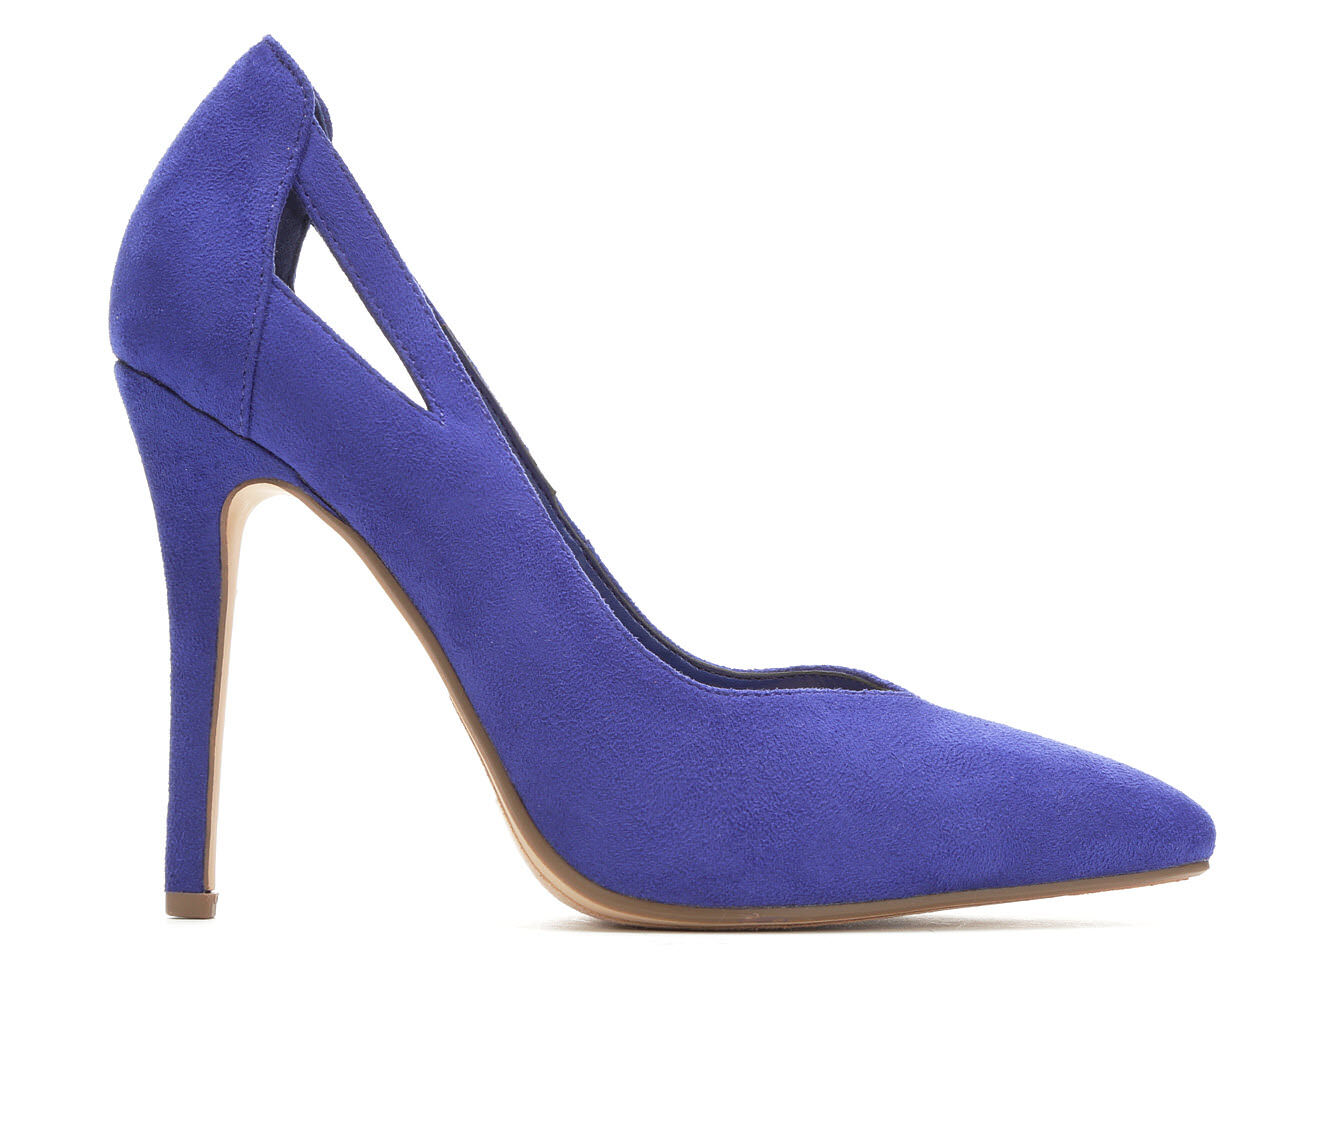 purchase discount Women's Delicious Scarlet Pumps Elec Blue Micro